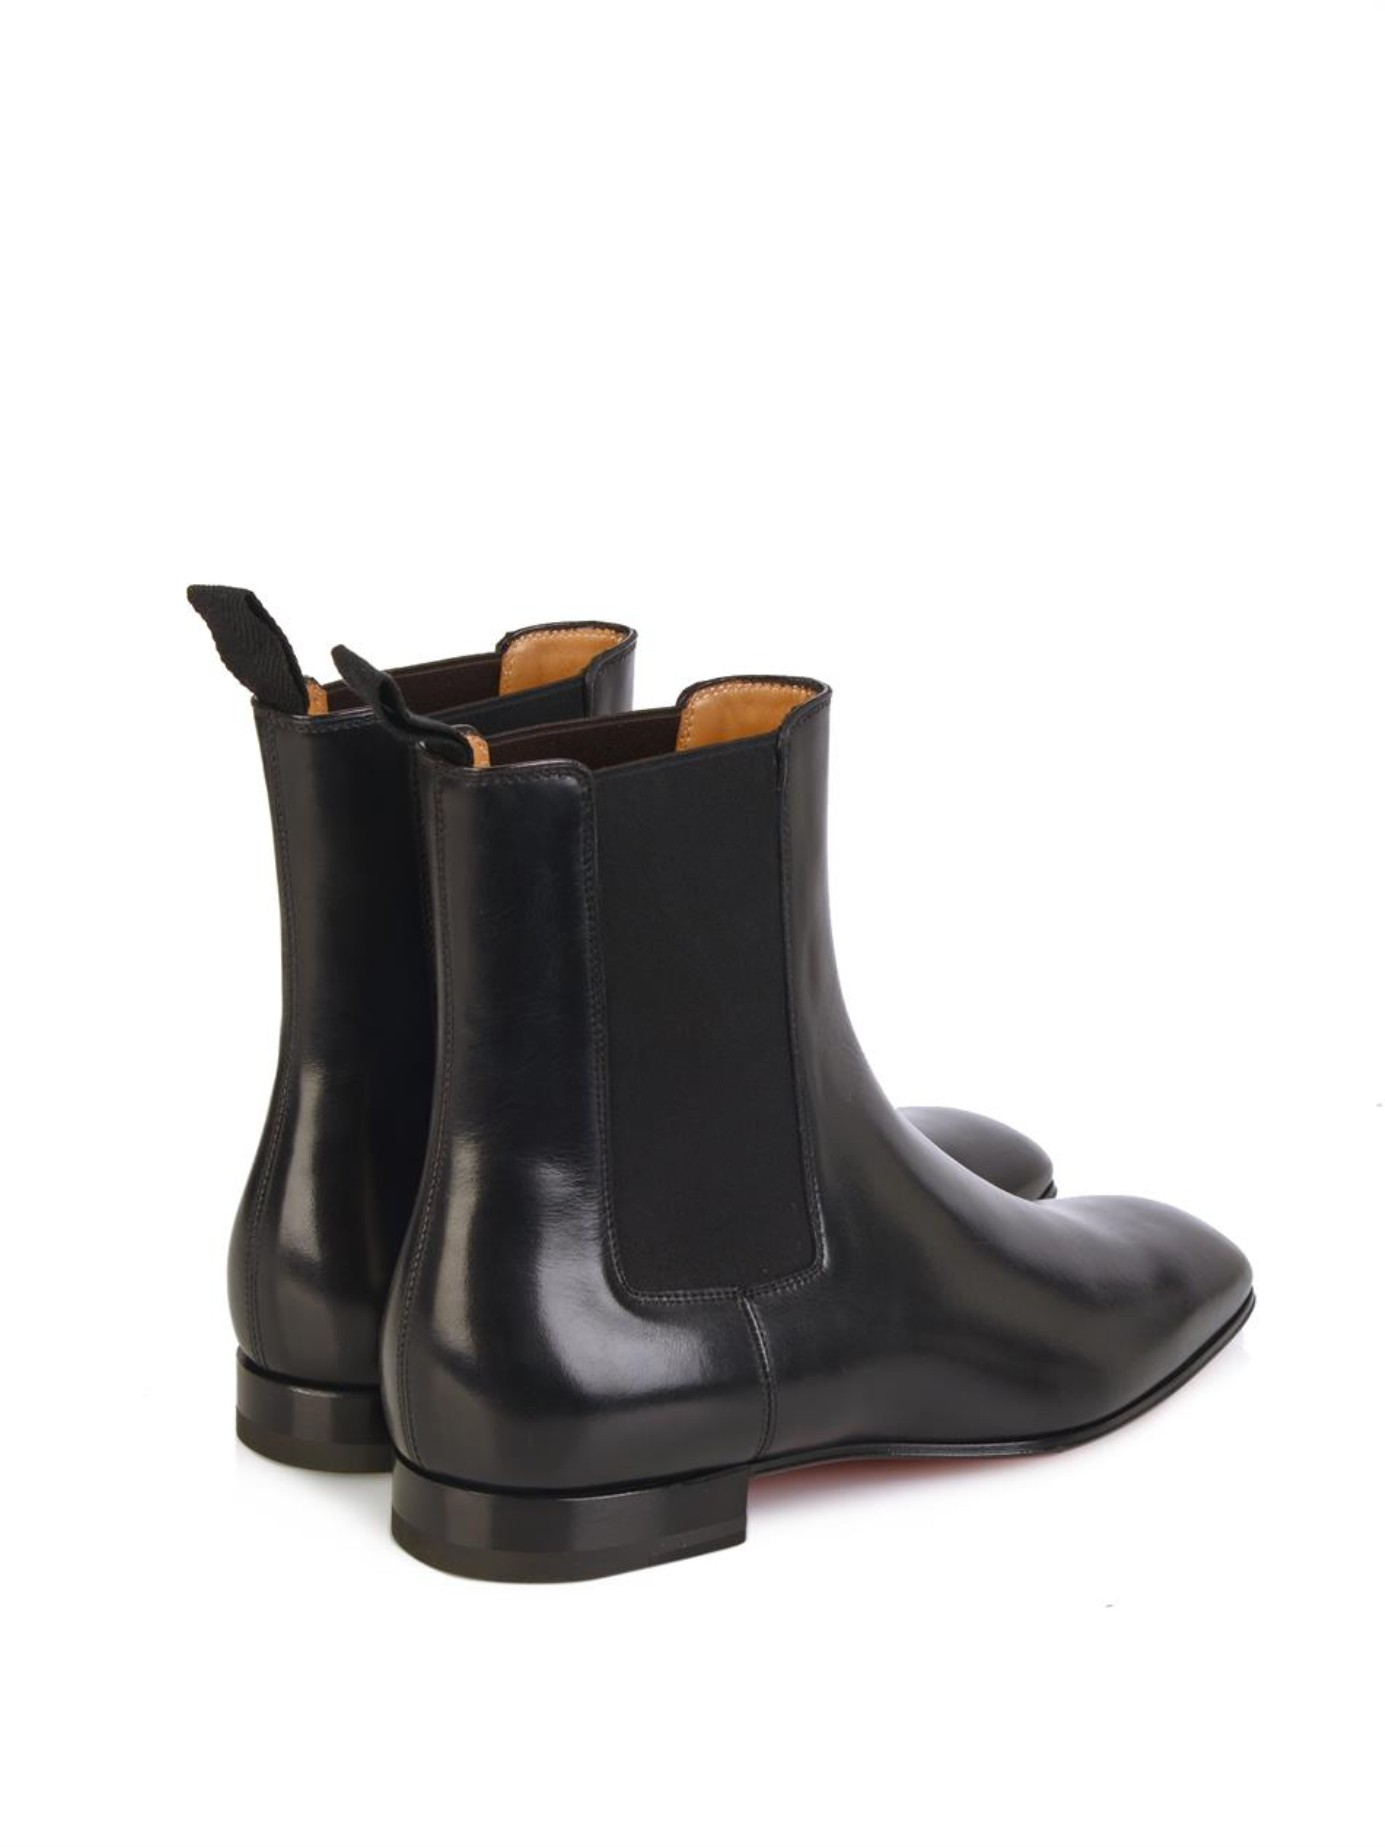 58dcc8b2917 Lyst - Christian Louboutin Broadie Leather Chelsea Boots in Black ...